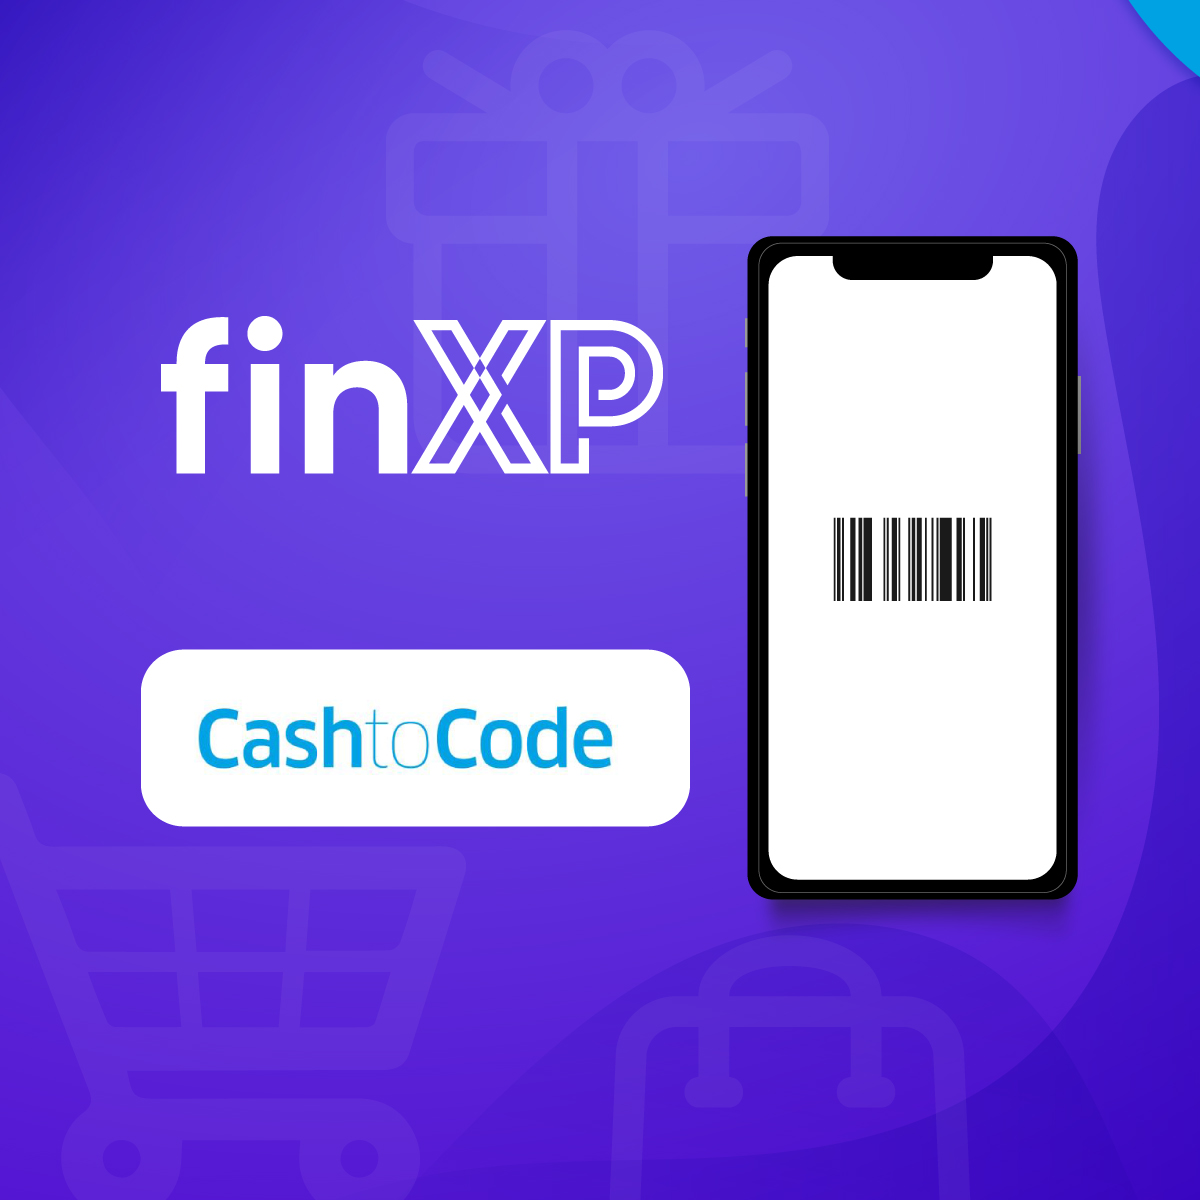 FinXP partners with CashtoCode, enabling digital merchants to accept cash payments